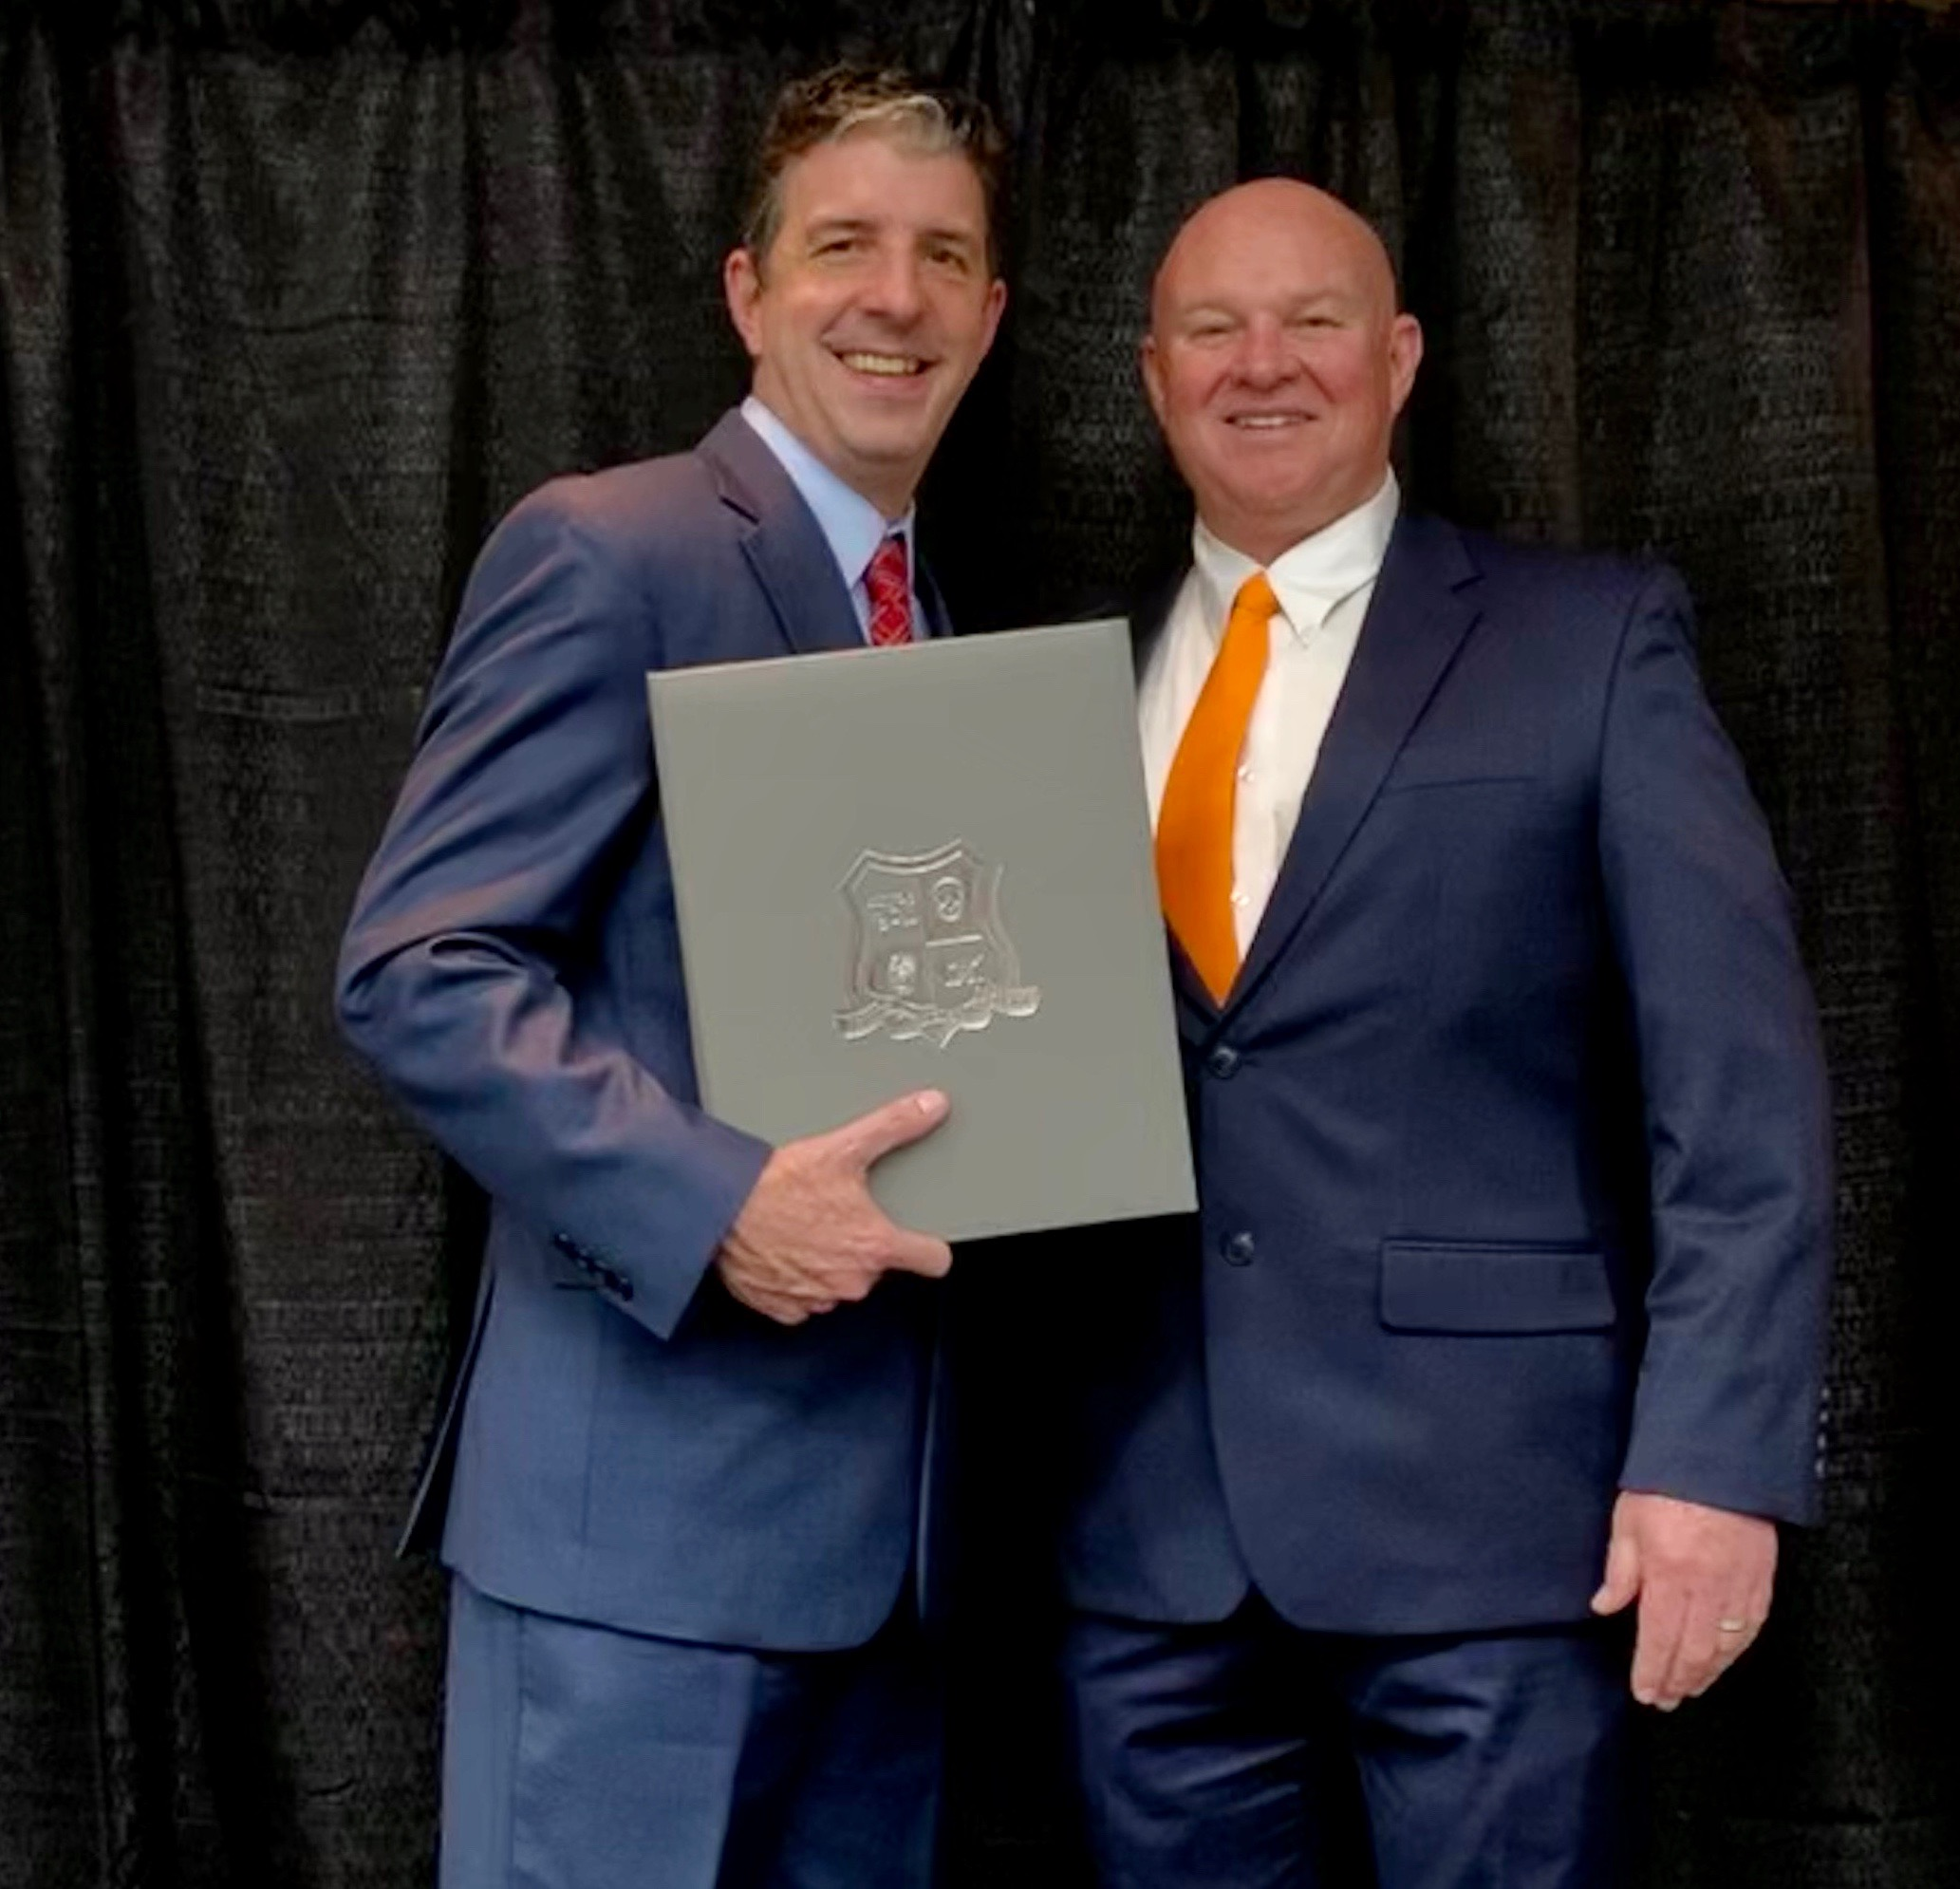 Mullinax in suit posing with anothe rman in suit holding award